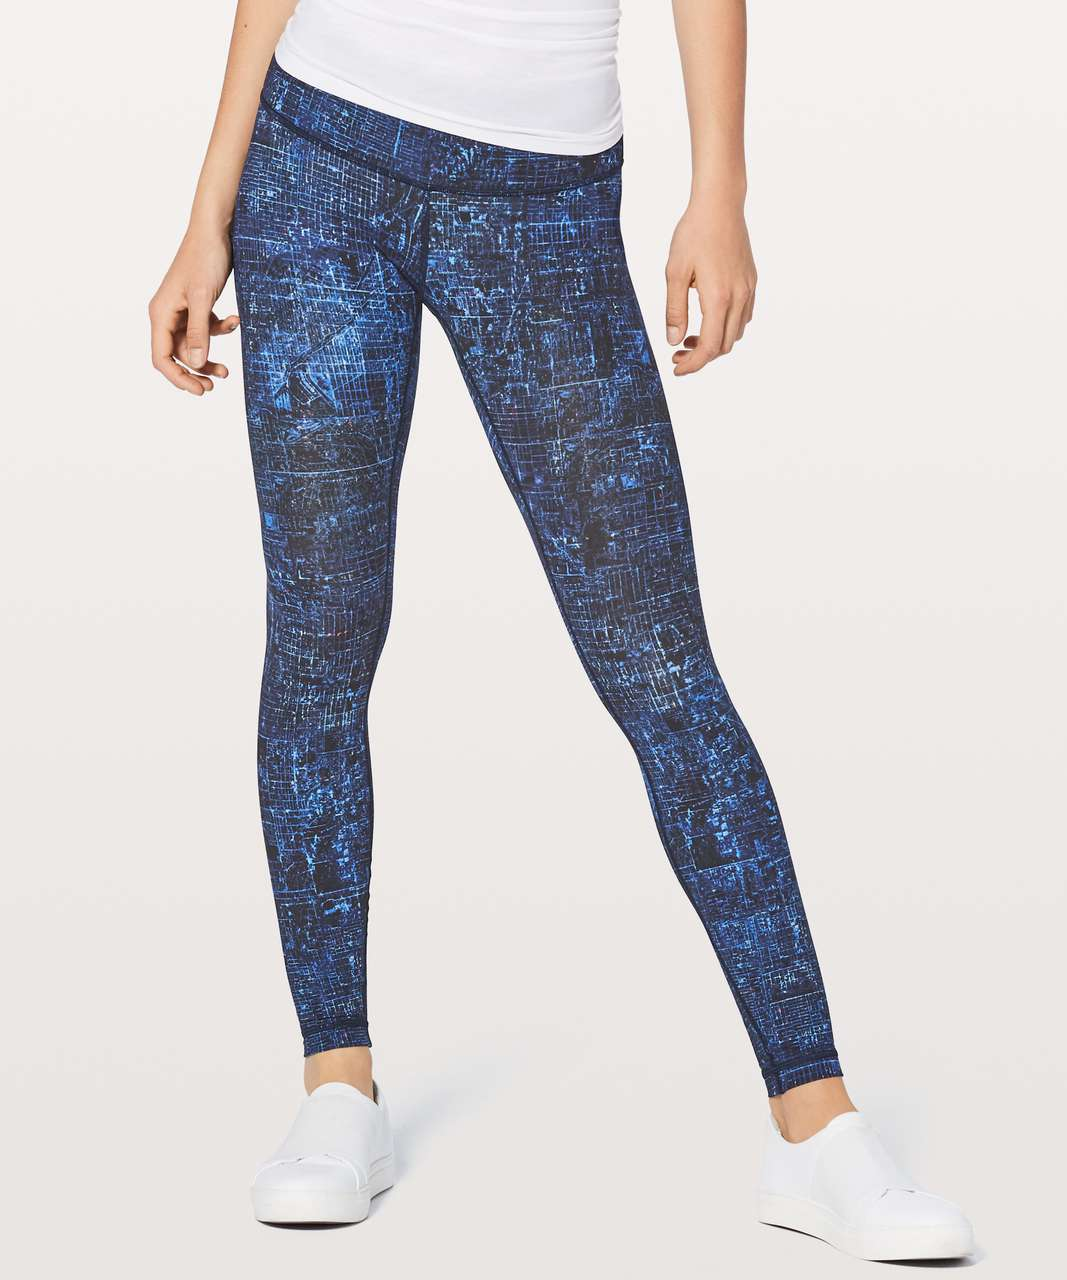 "Lululemon Wunder Under Low-Rise Tight *Full-On Luxtreme 28"" - City Lights Multi Black"